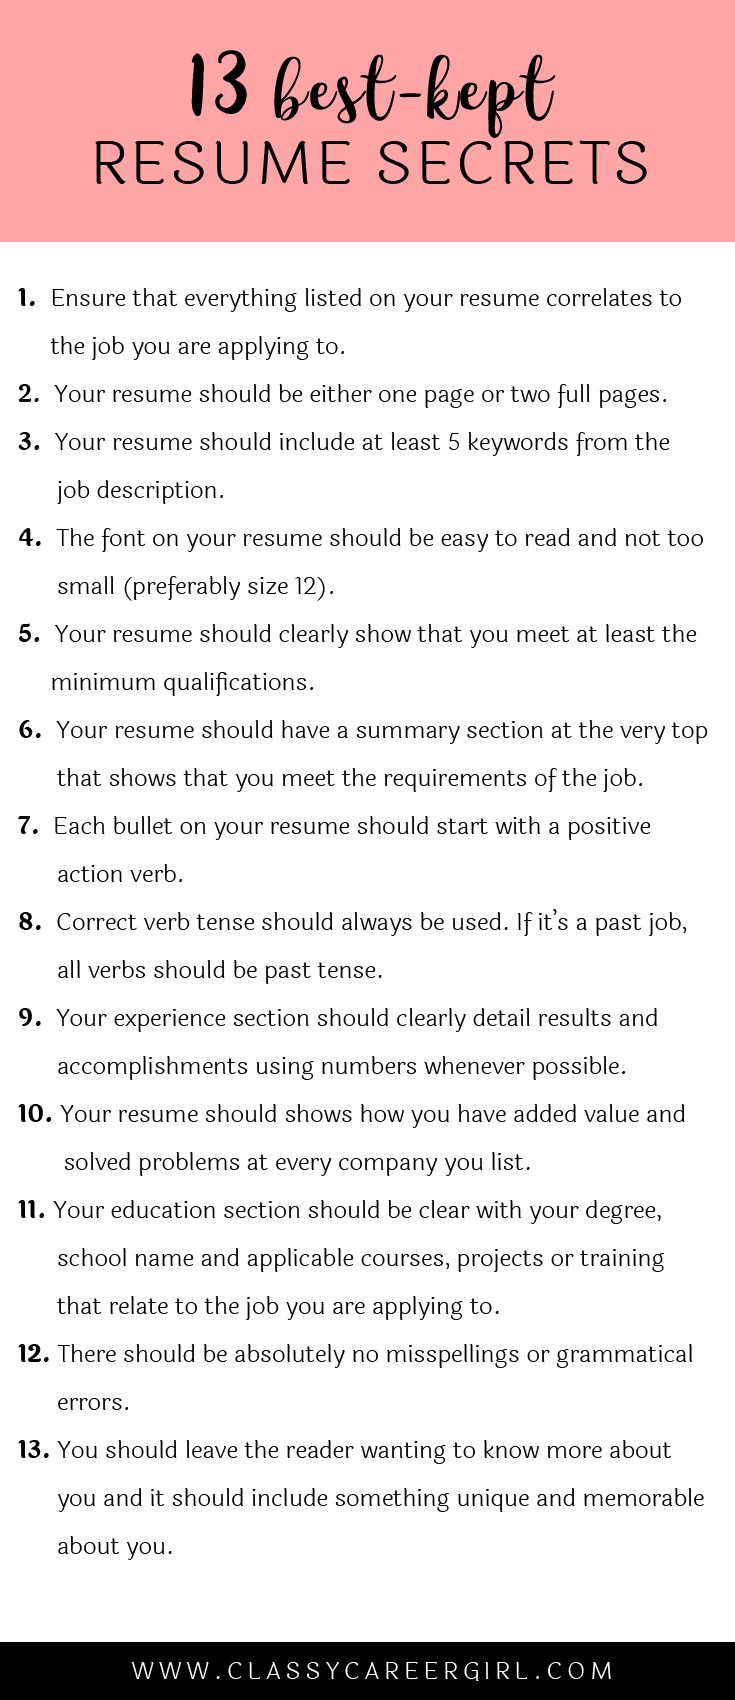 Opposenewapstandardsus  Personable  Ideas About Resume On Pinterest  Cv Format Resume  With Interesting Some Hiring Managers Will Toss Your Resume Out If You Dont Know These  With Cute One Page Resume Also How To Fill Out A Resume In Addition Resume Sections And Font Size For Resume As Well As Resume For Internship Additionally Resume And Cover Letter From Pinterestcom With Opposenewapstandardsus  Interesting  Ideas About Resume On Pinterest  Cv Format Resume  With Cute Some Hiring Managers Will Toss Your Resume Out If You Dont Know These  And Personable One Page Resume Also How To Fill Out A Resume In Addition Resume Sections From Pinterestcom